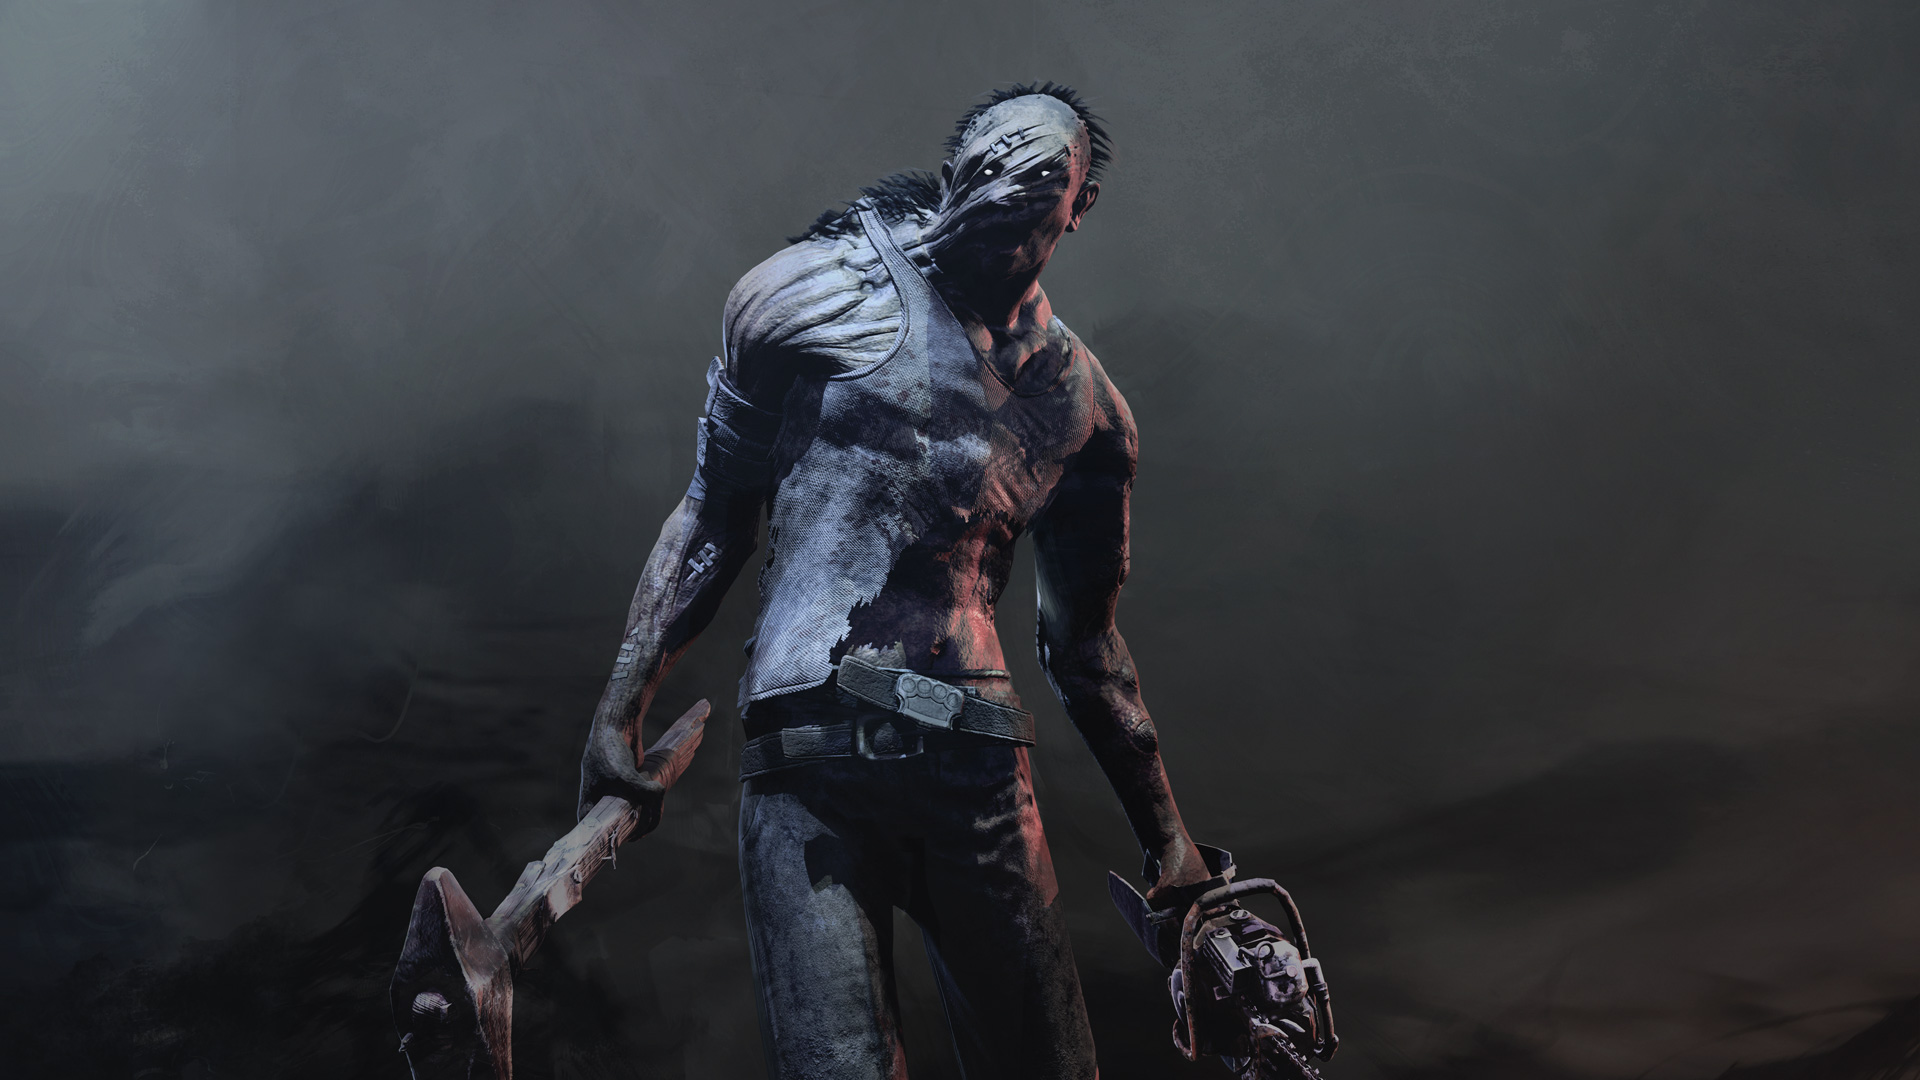 Dead By Daylight Wallpaper 1920x1080 Posted By Christopher Tremblay